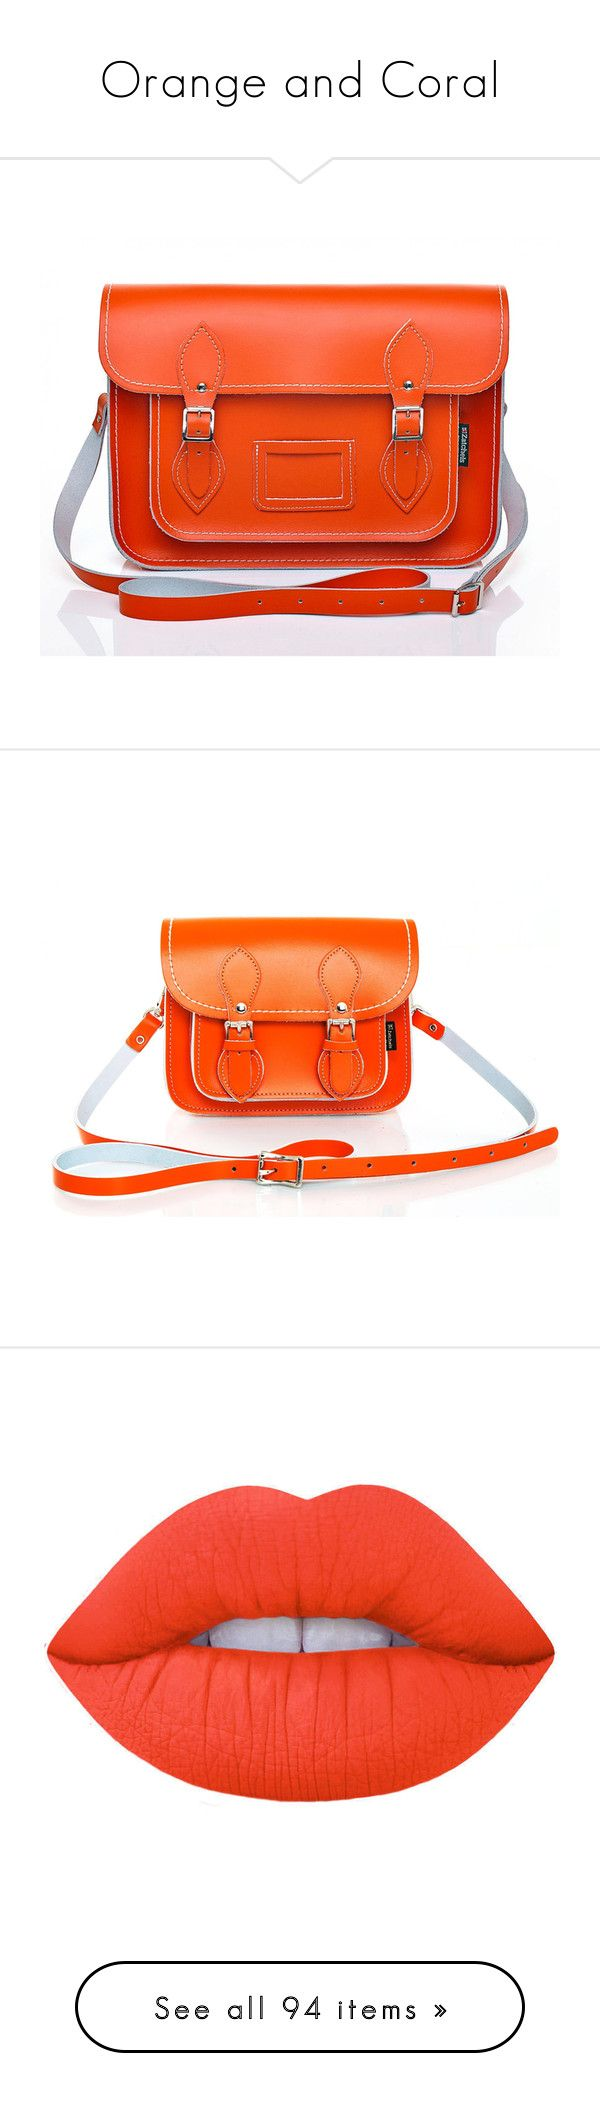 """Orange and Coral"" by velvetvolcano on Polyvore featuring bags, handbags, leather handbags, orange satchel handbag, handbag satchel, real leather handbags, leather purses, genuine leather purse, satchel handbags and orange leather handbag"